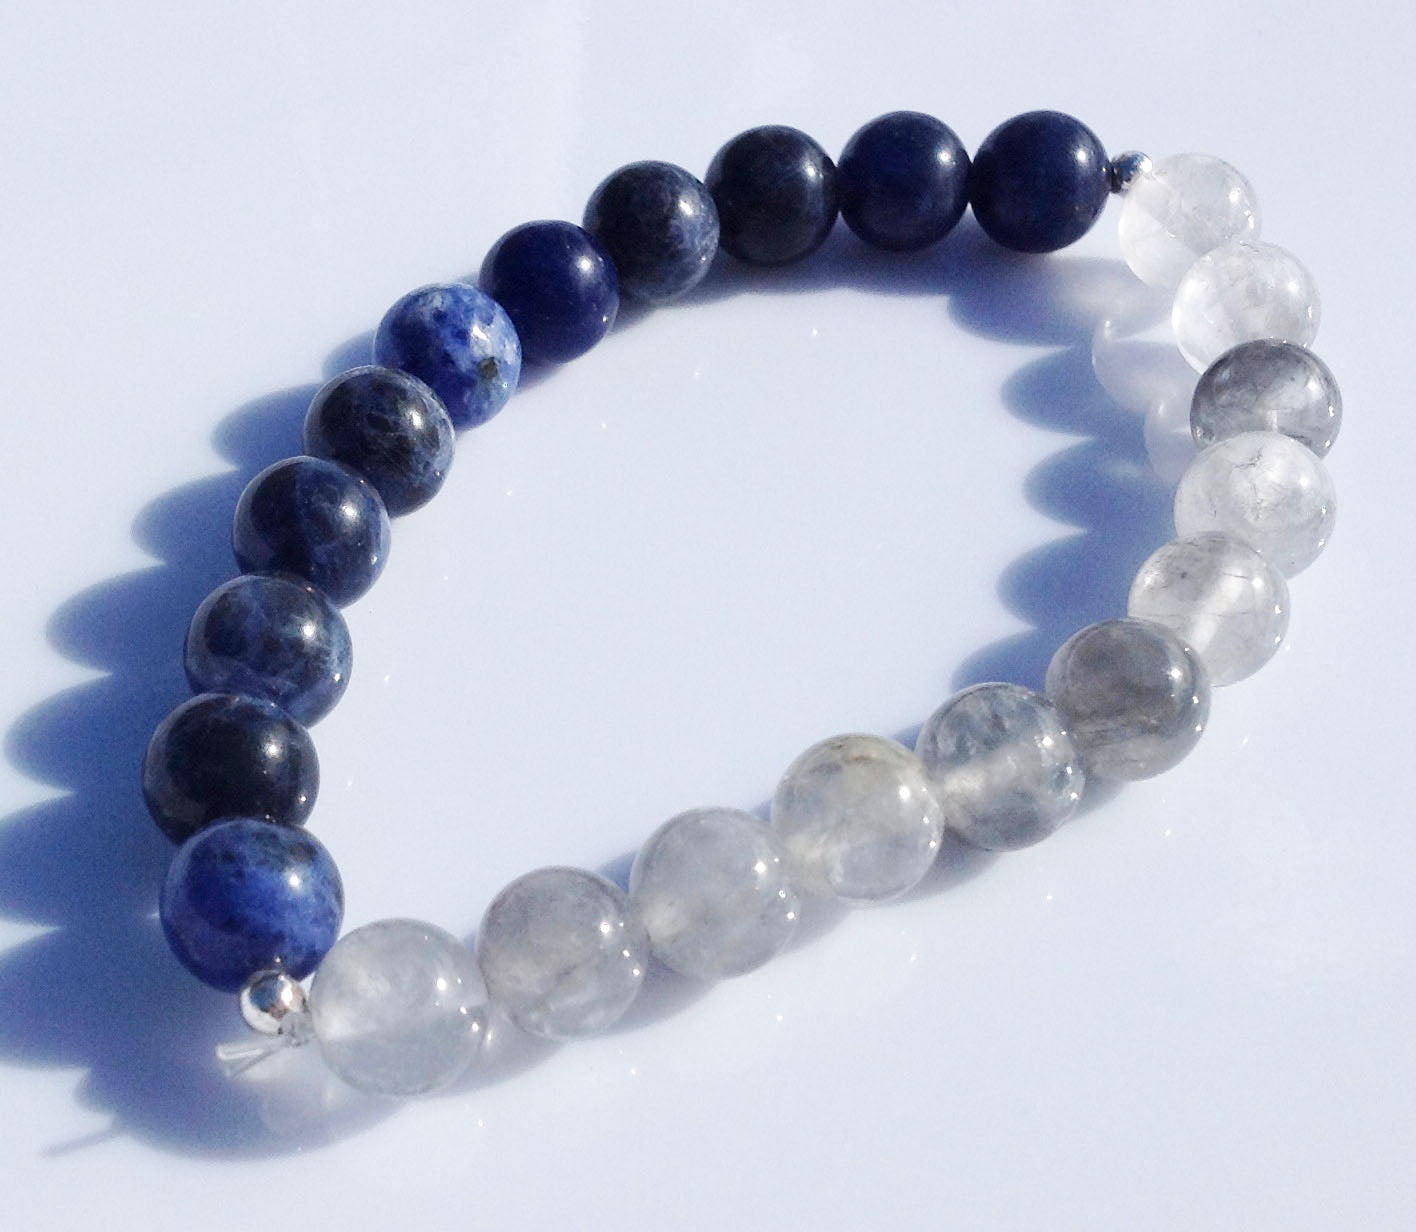 Balance Collection Rutilated Quartz Crystal & Sodalite Yoga Meditation Wrist Mala Bracelet Third Eye Chakra Focus Healing Energy Reiki